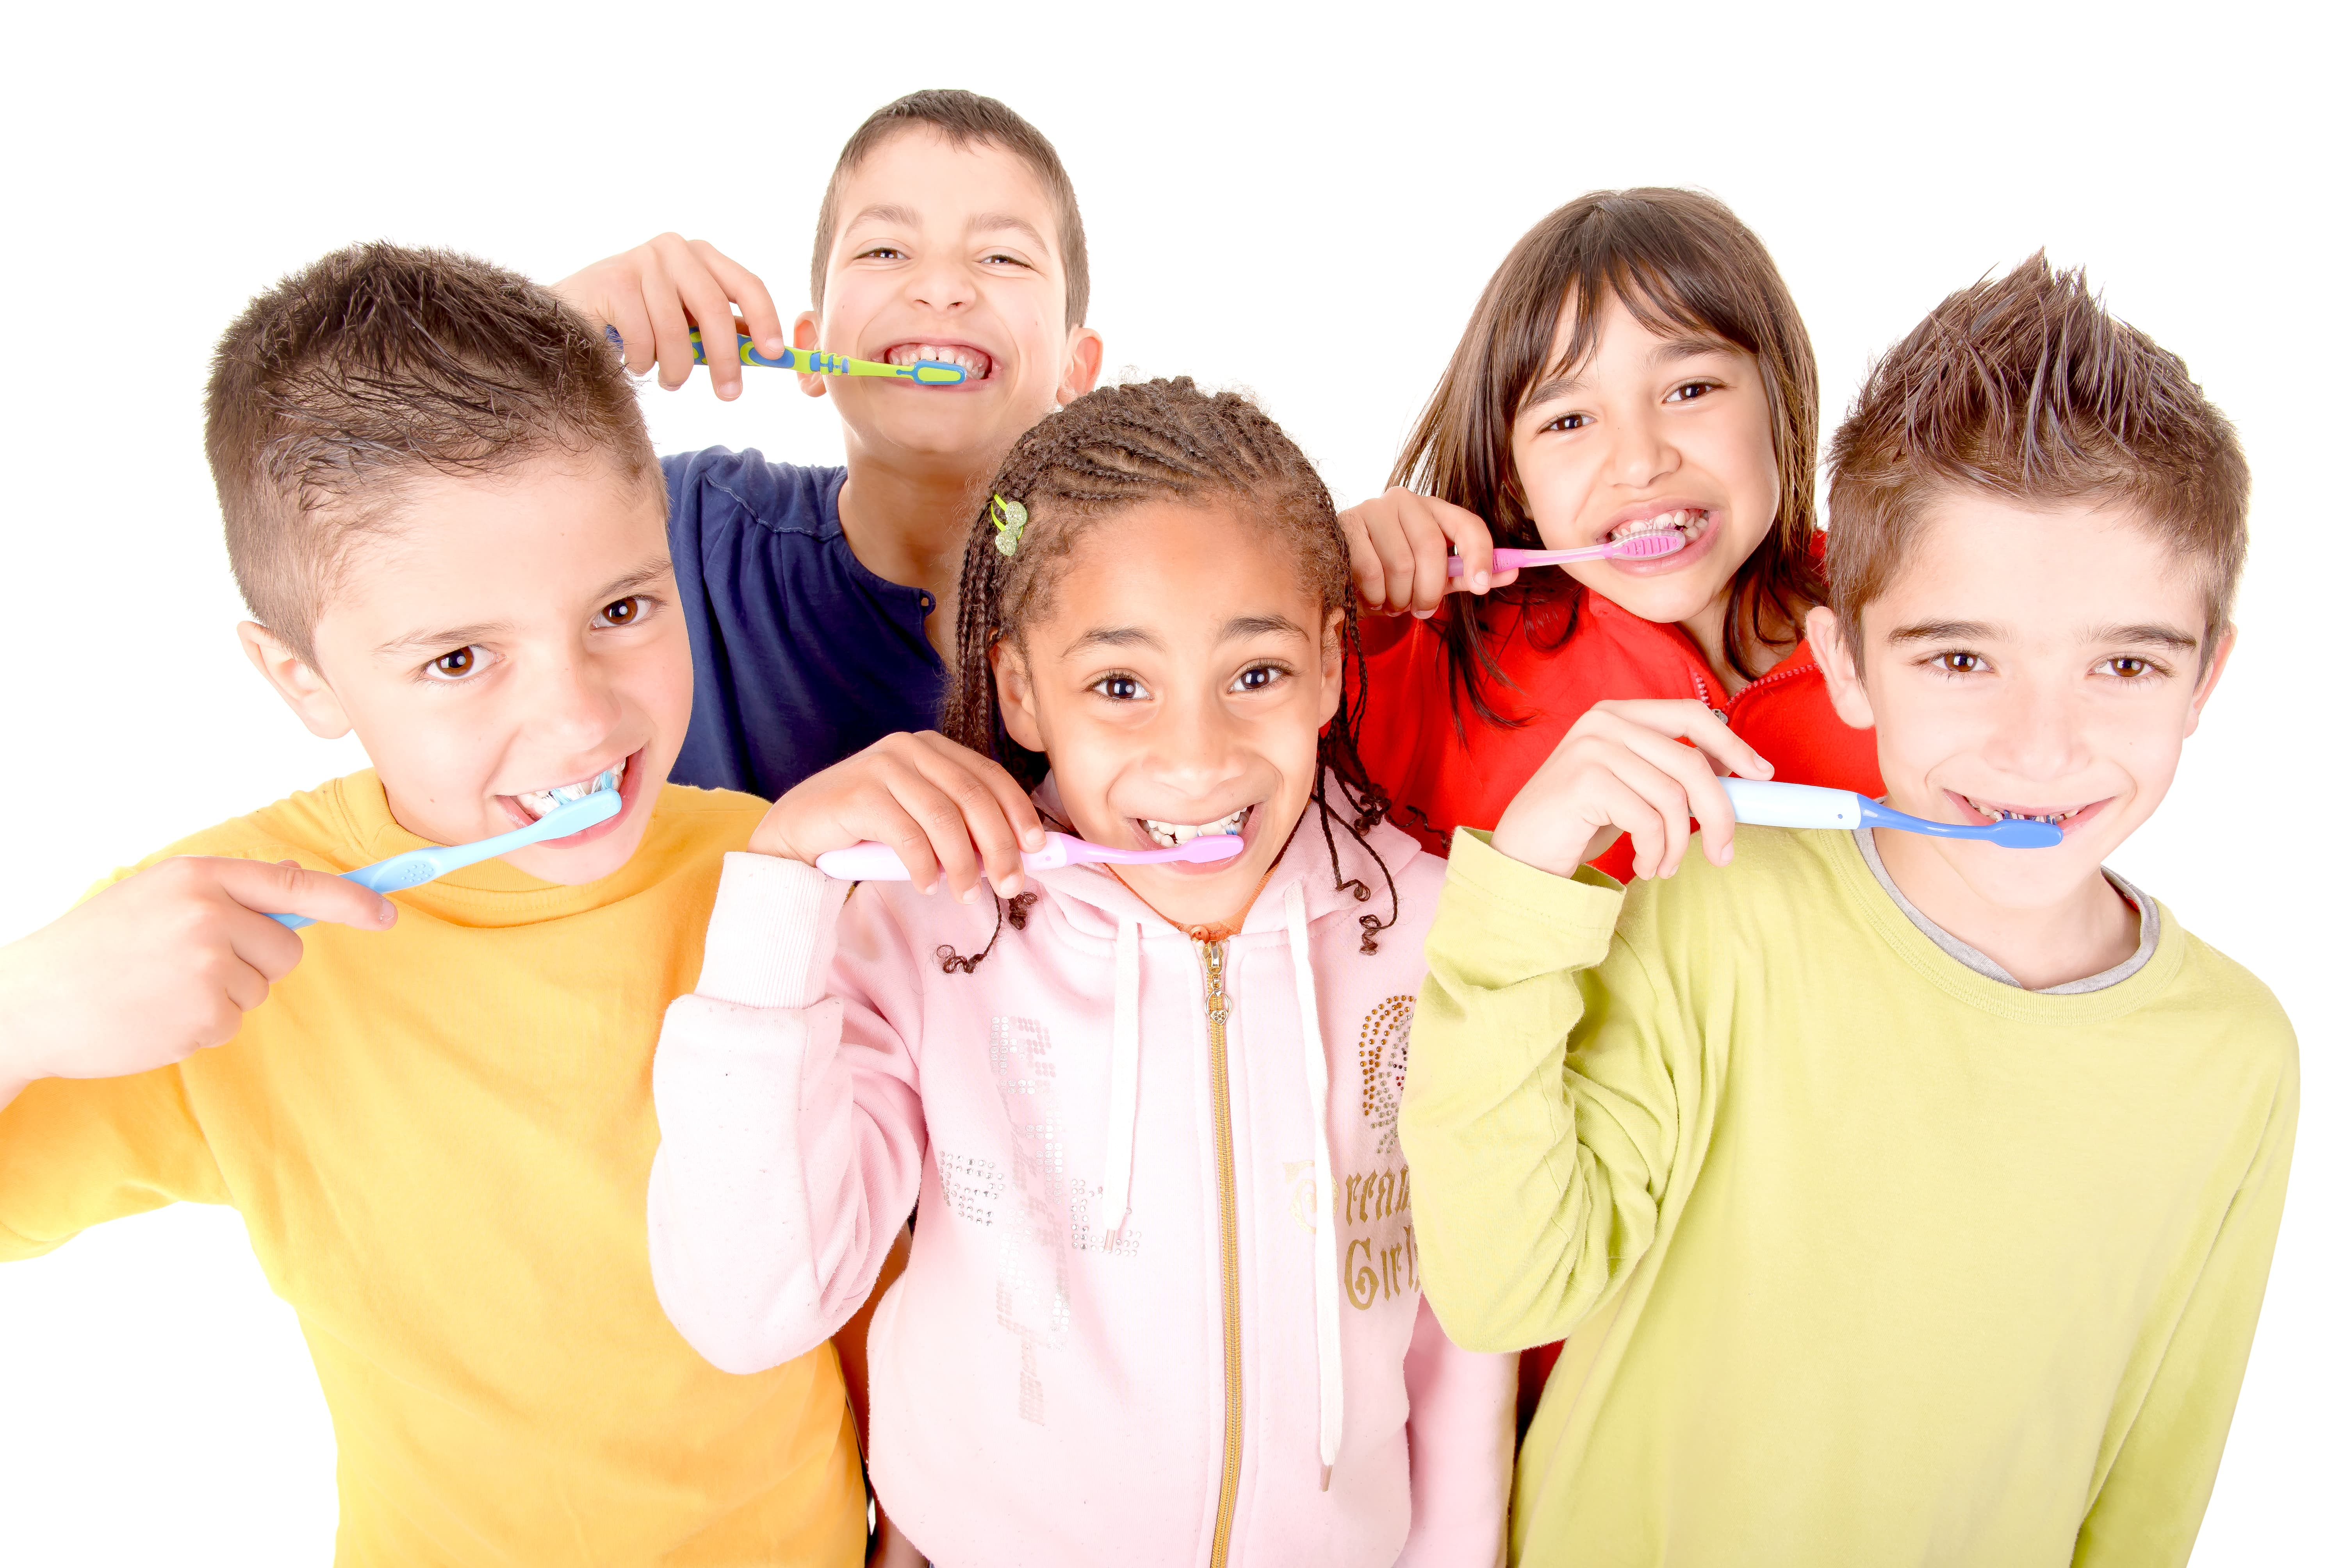 A group of five kids brushing their teeth